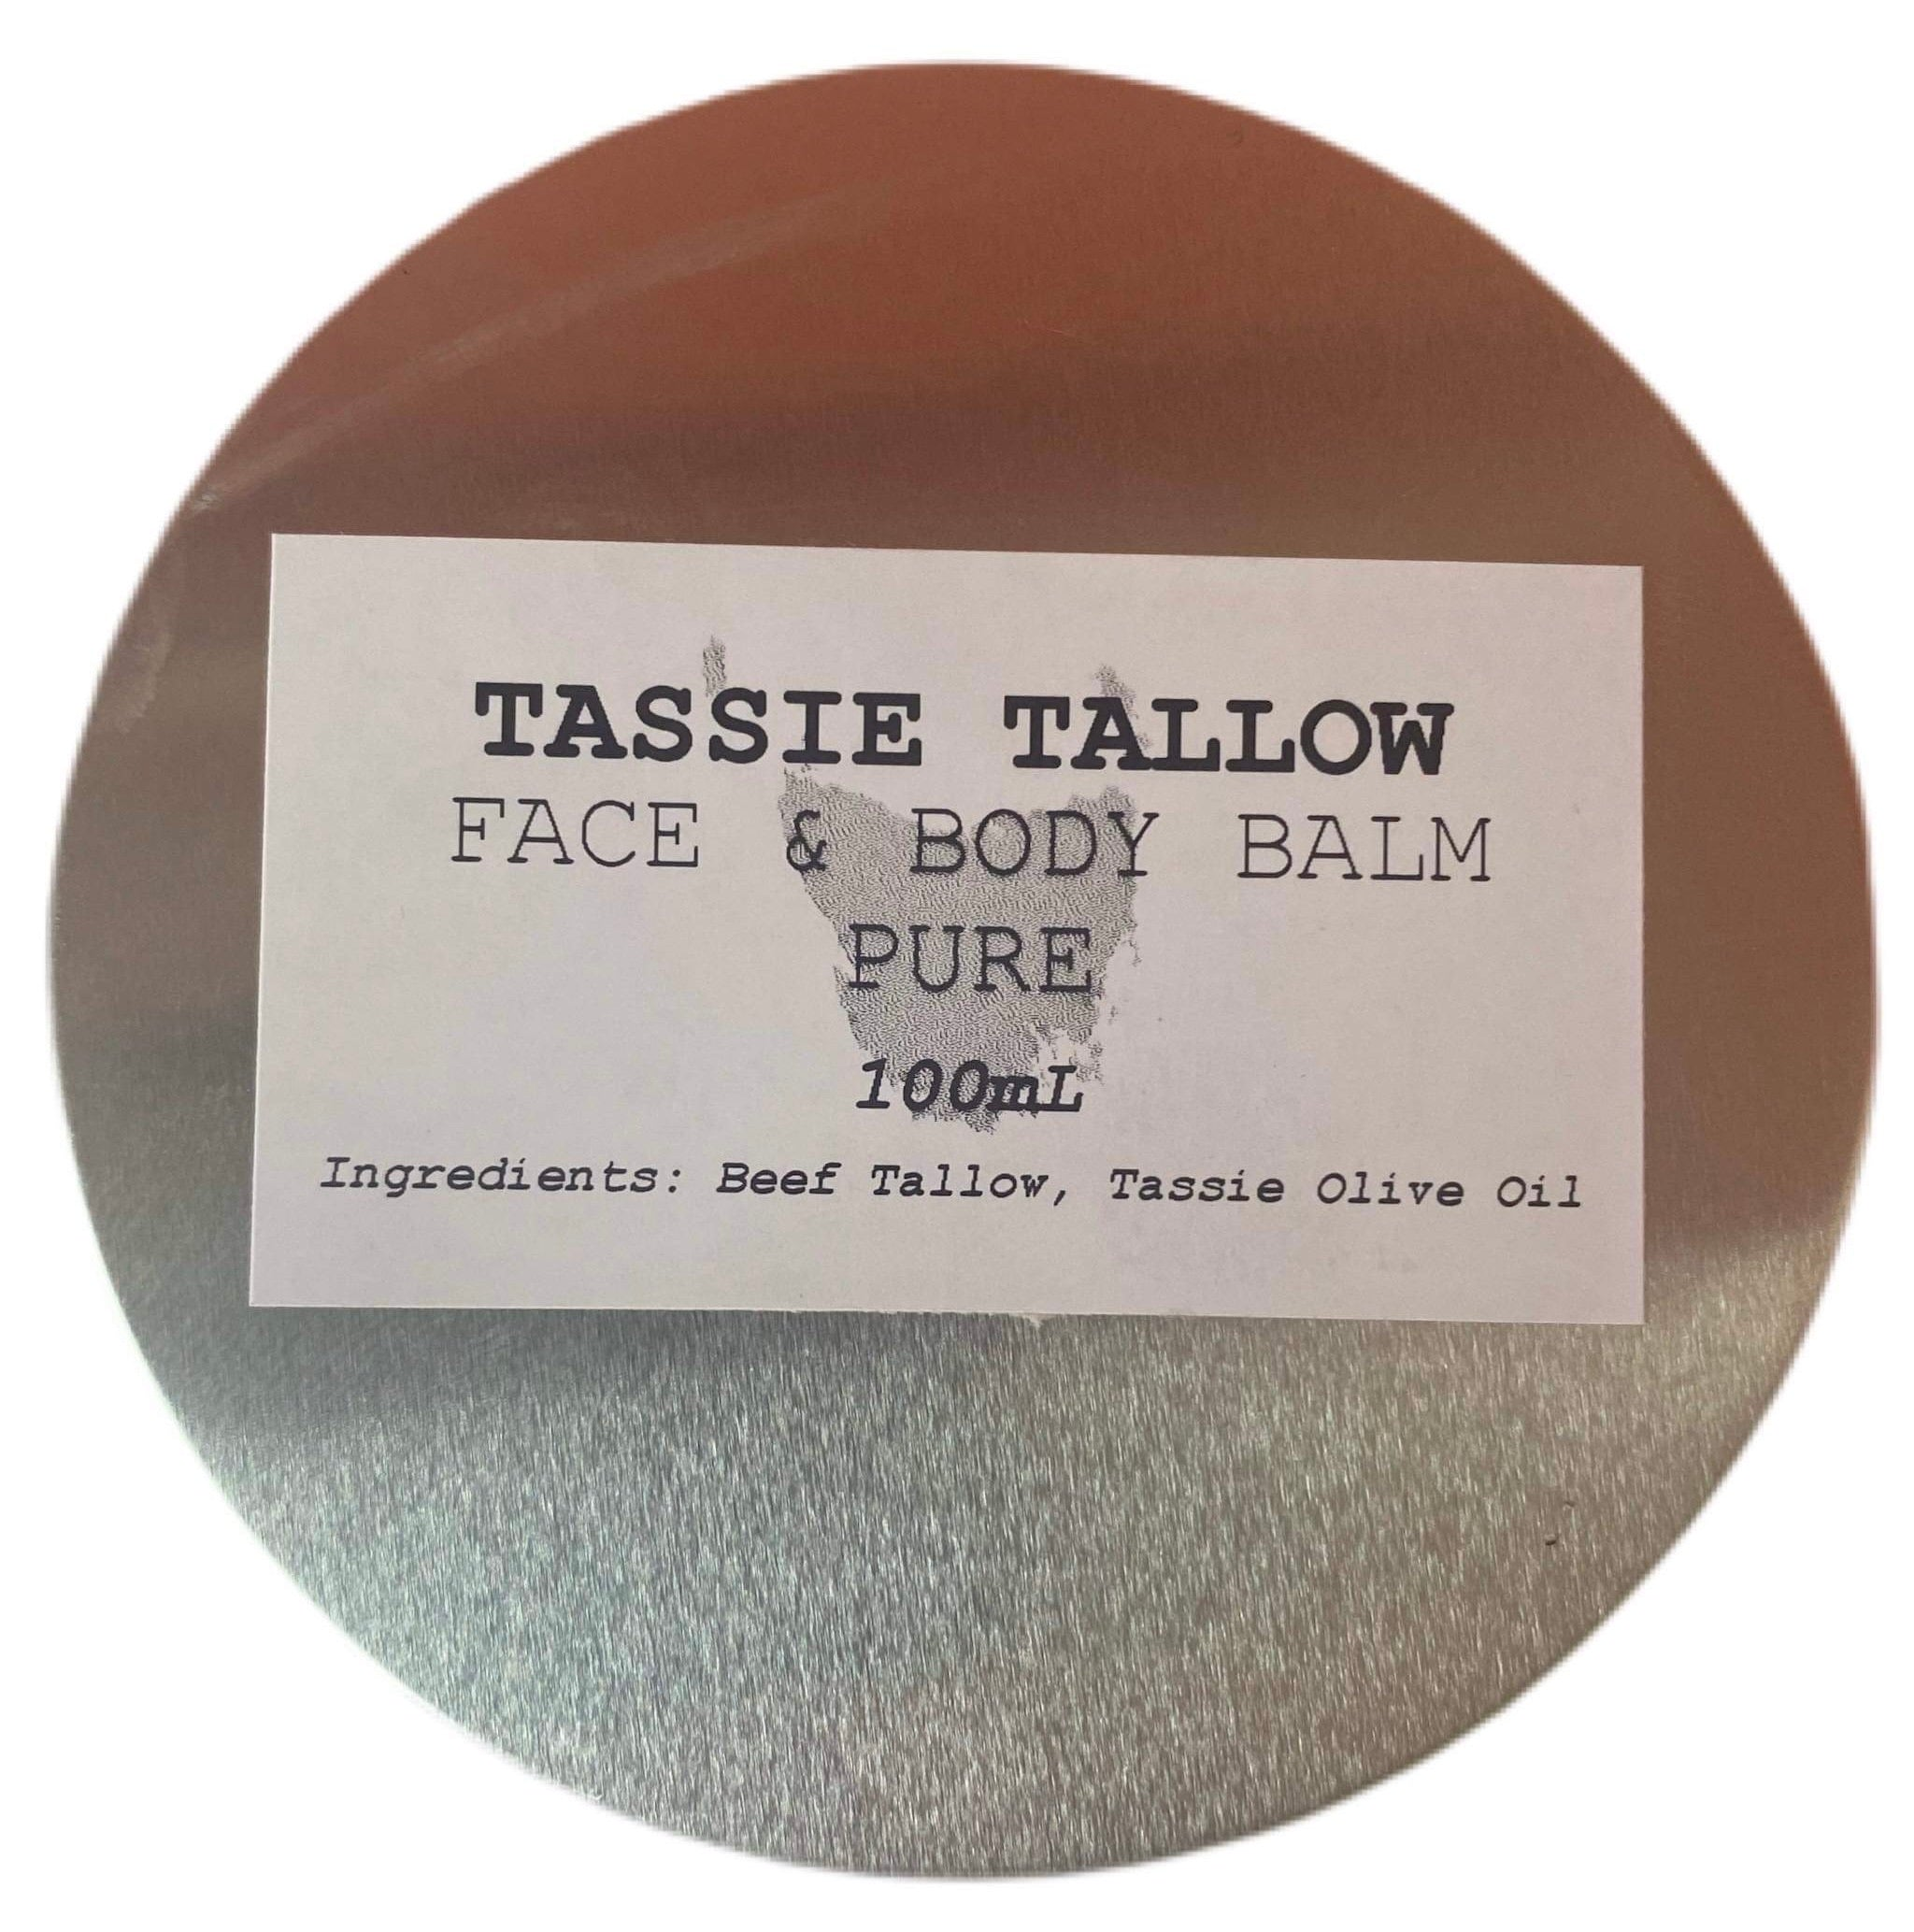 Tallow Face & Body Balm | PURE | 100mL